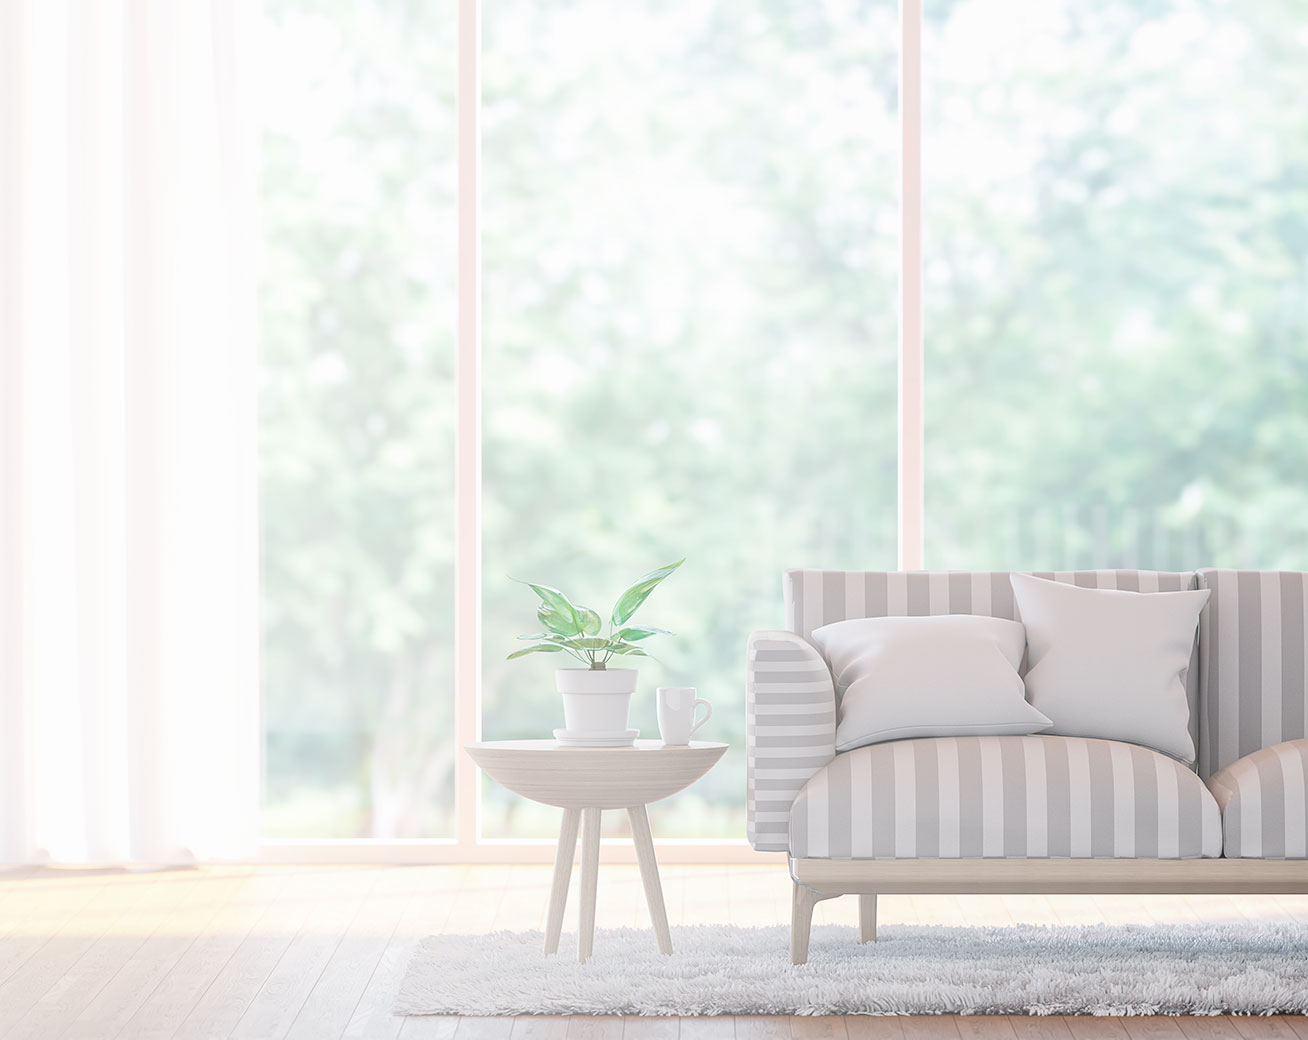 Couch infront of large bay windows